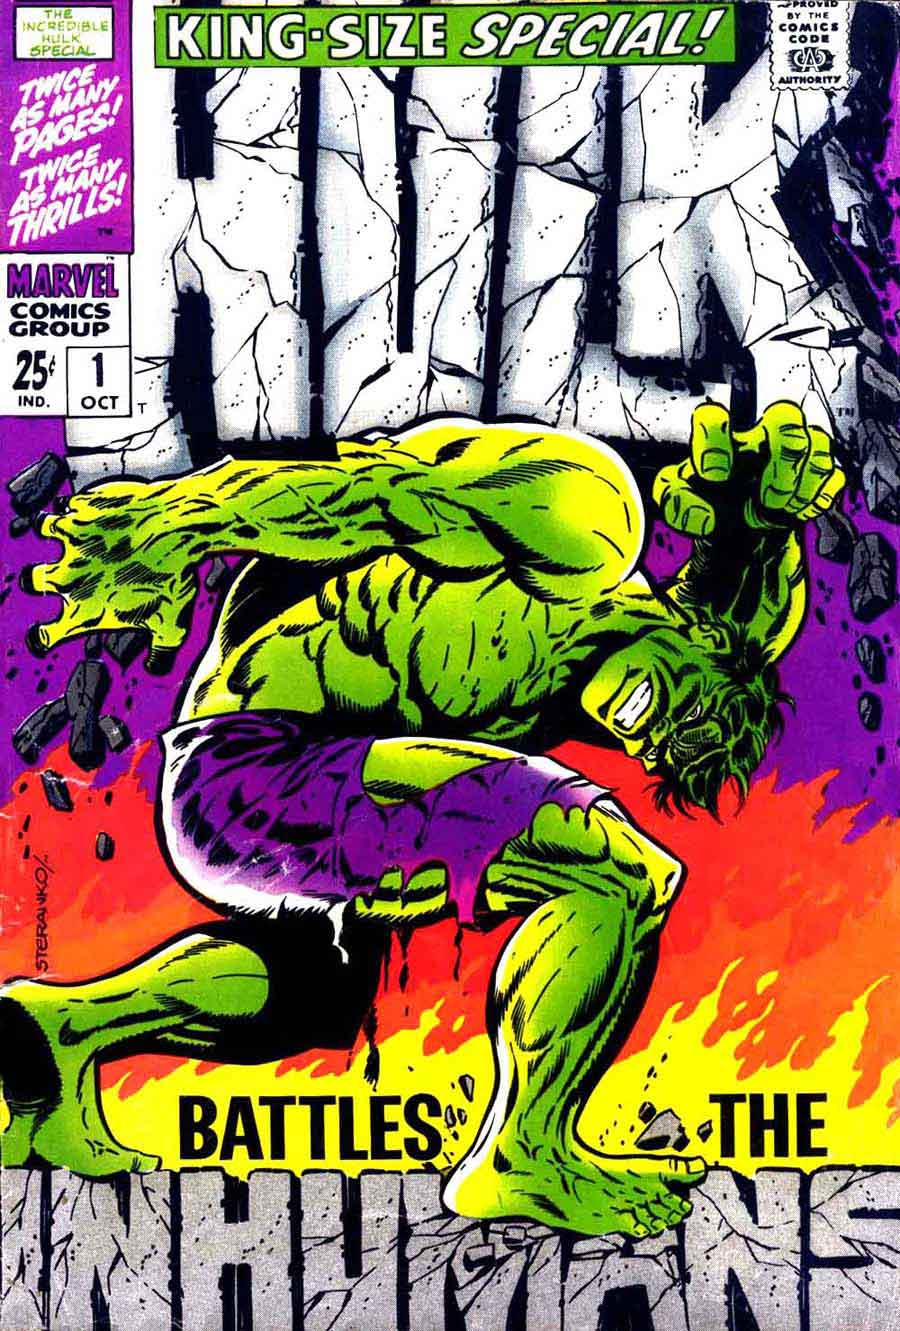 Incredible Hulk v2 annual #1 marvel comic book cover art by Jim Steranko